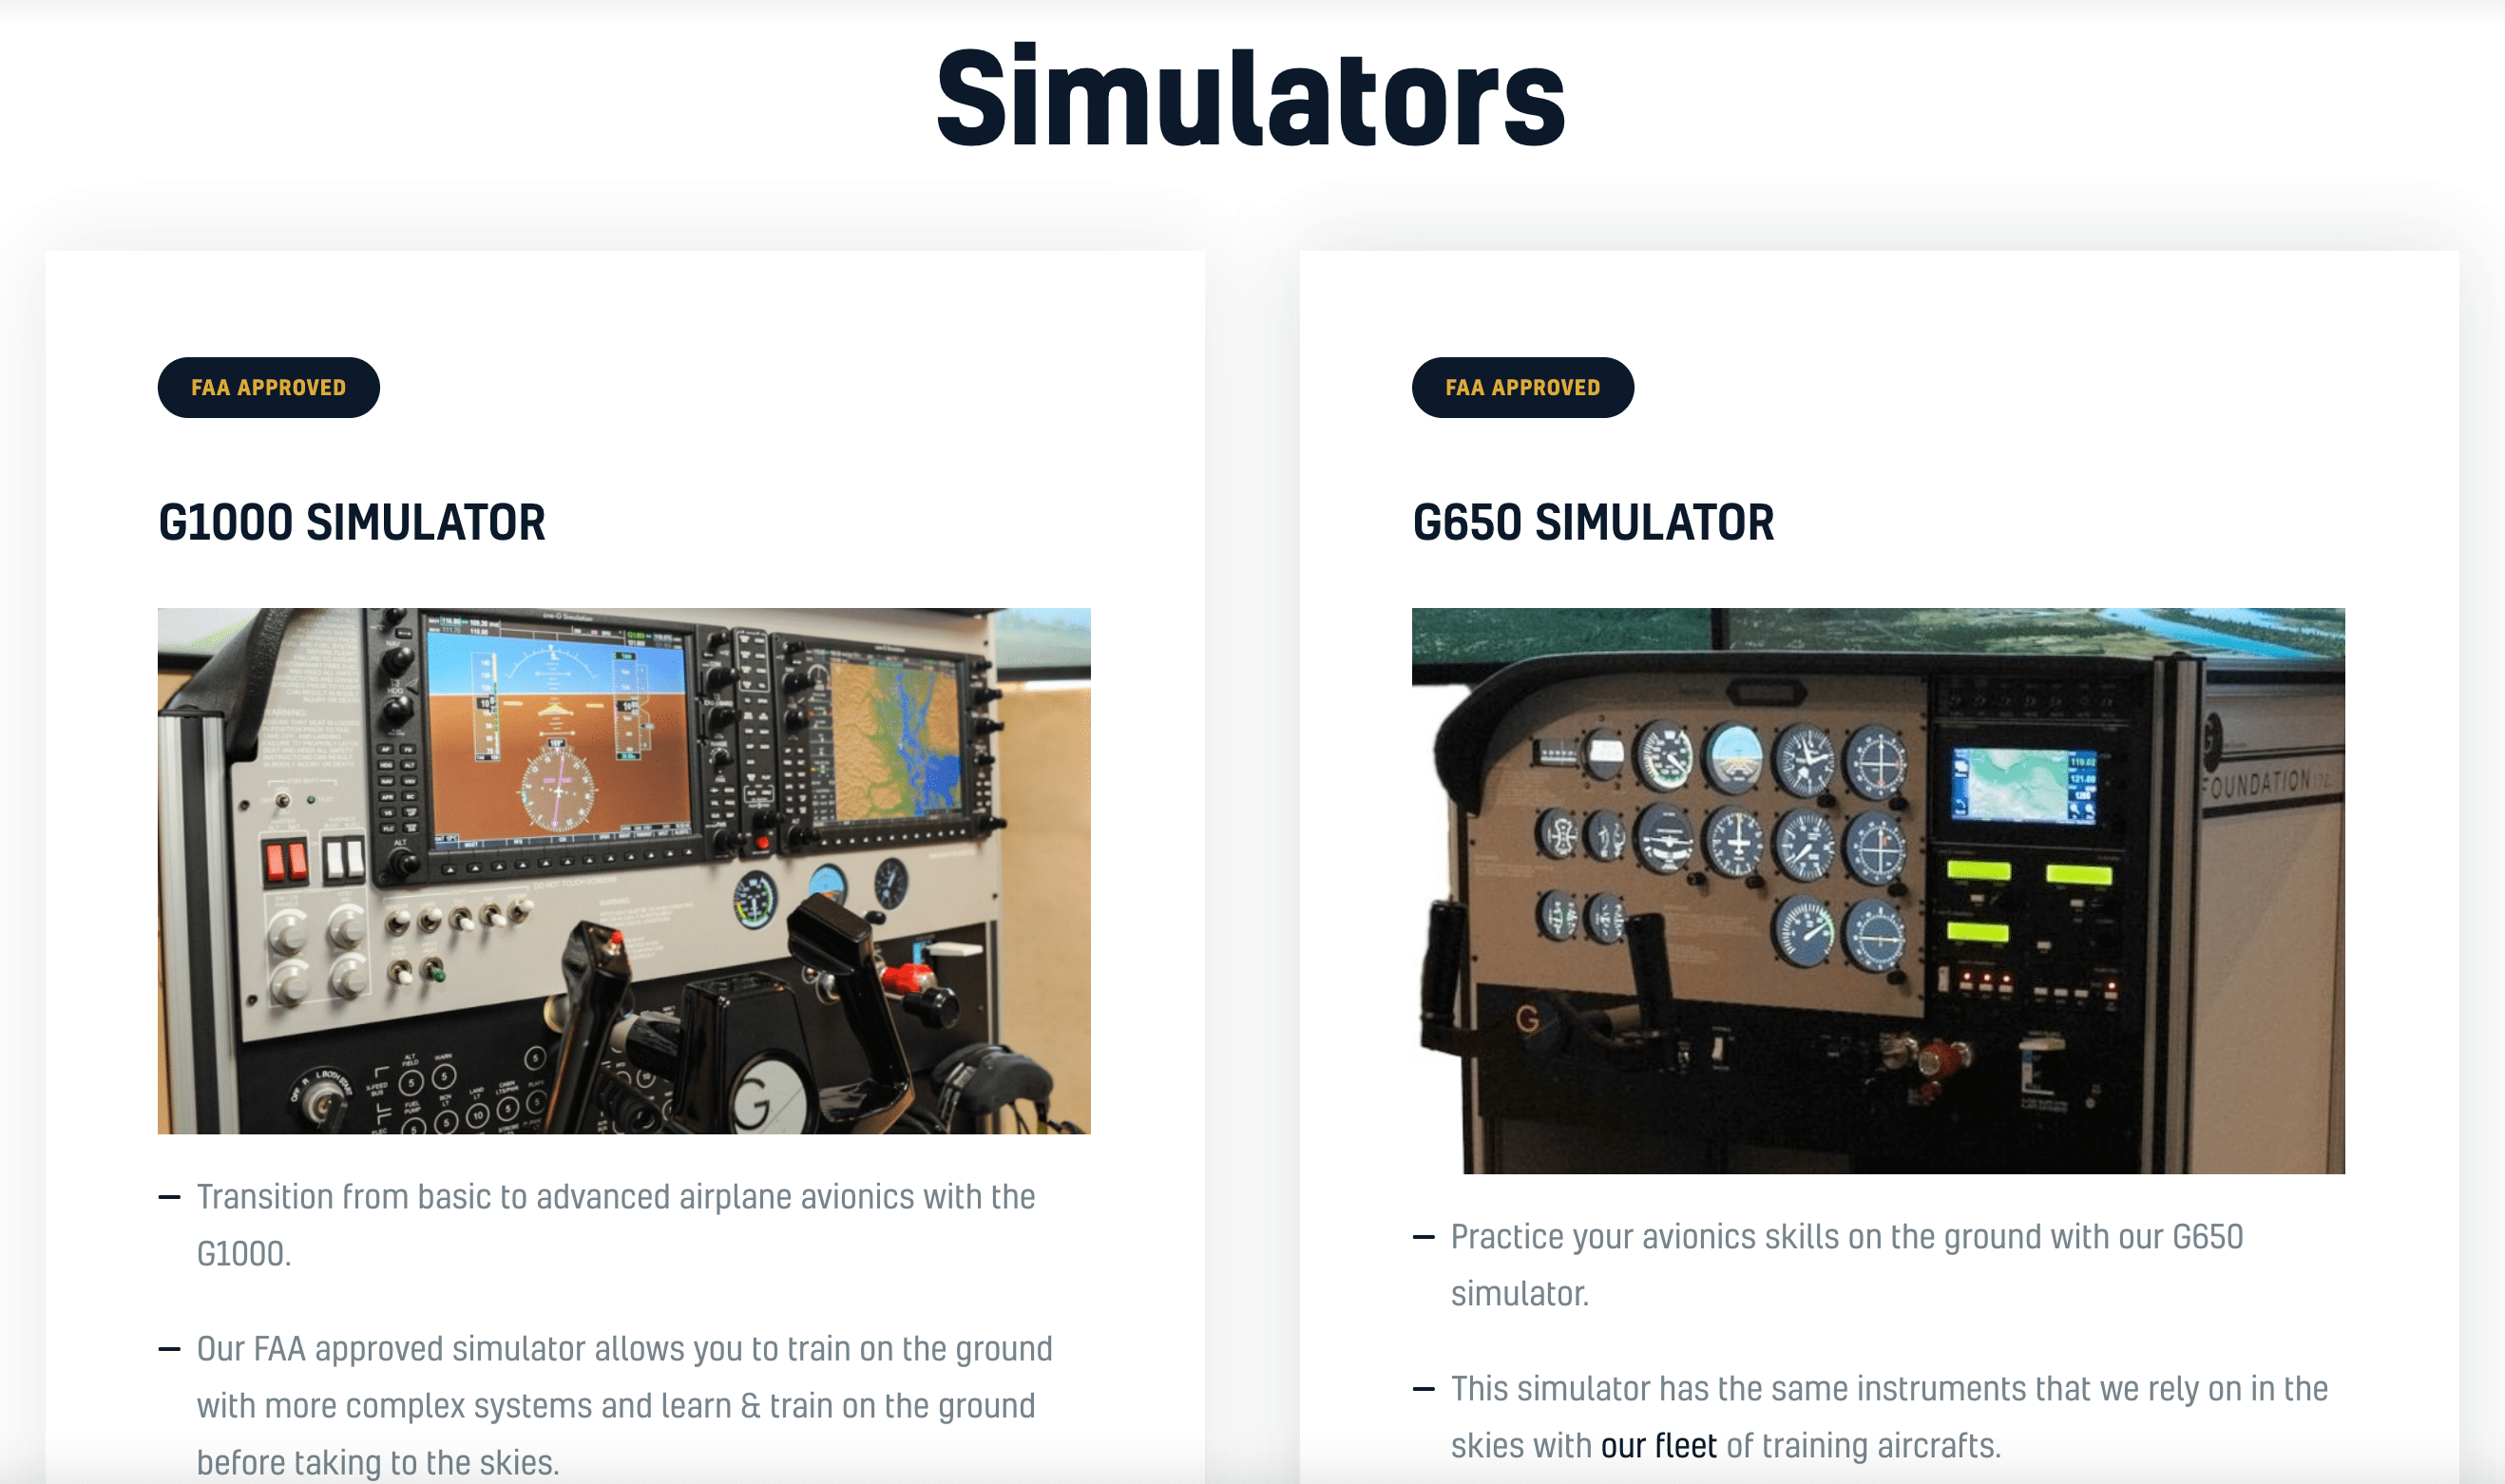 Flight simulators to learn how to fly